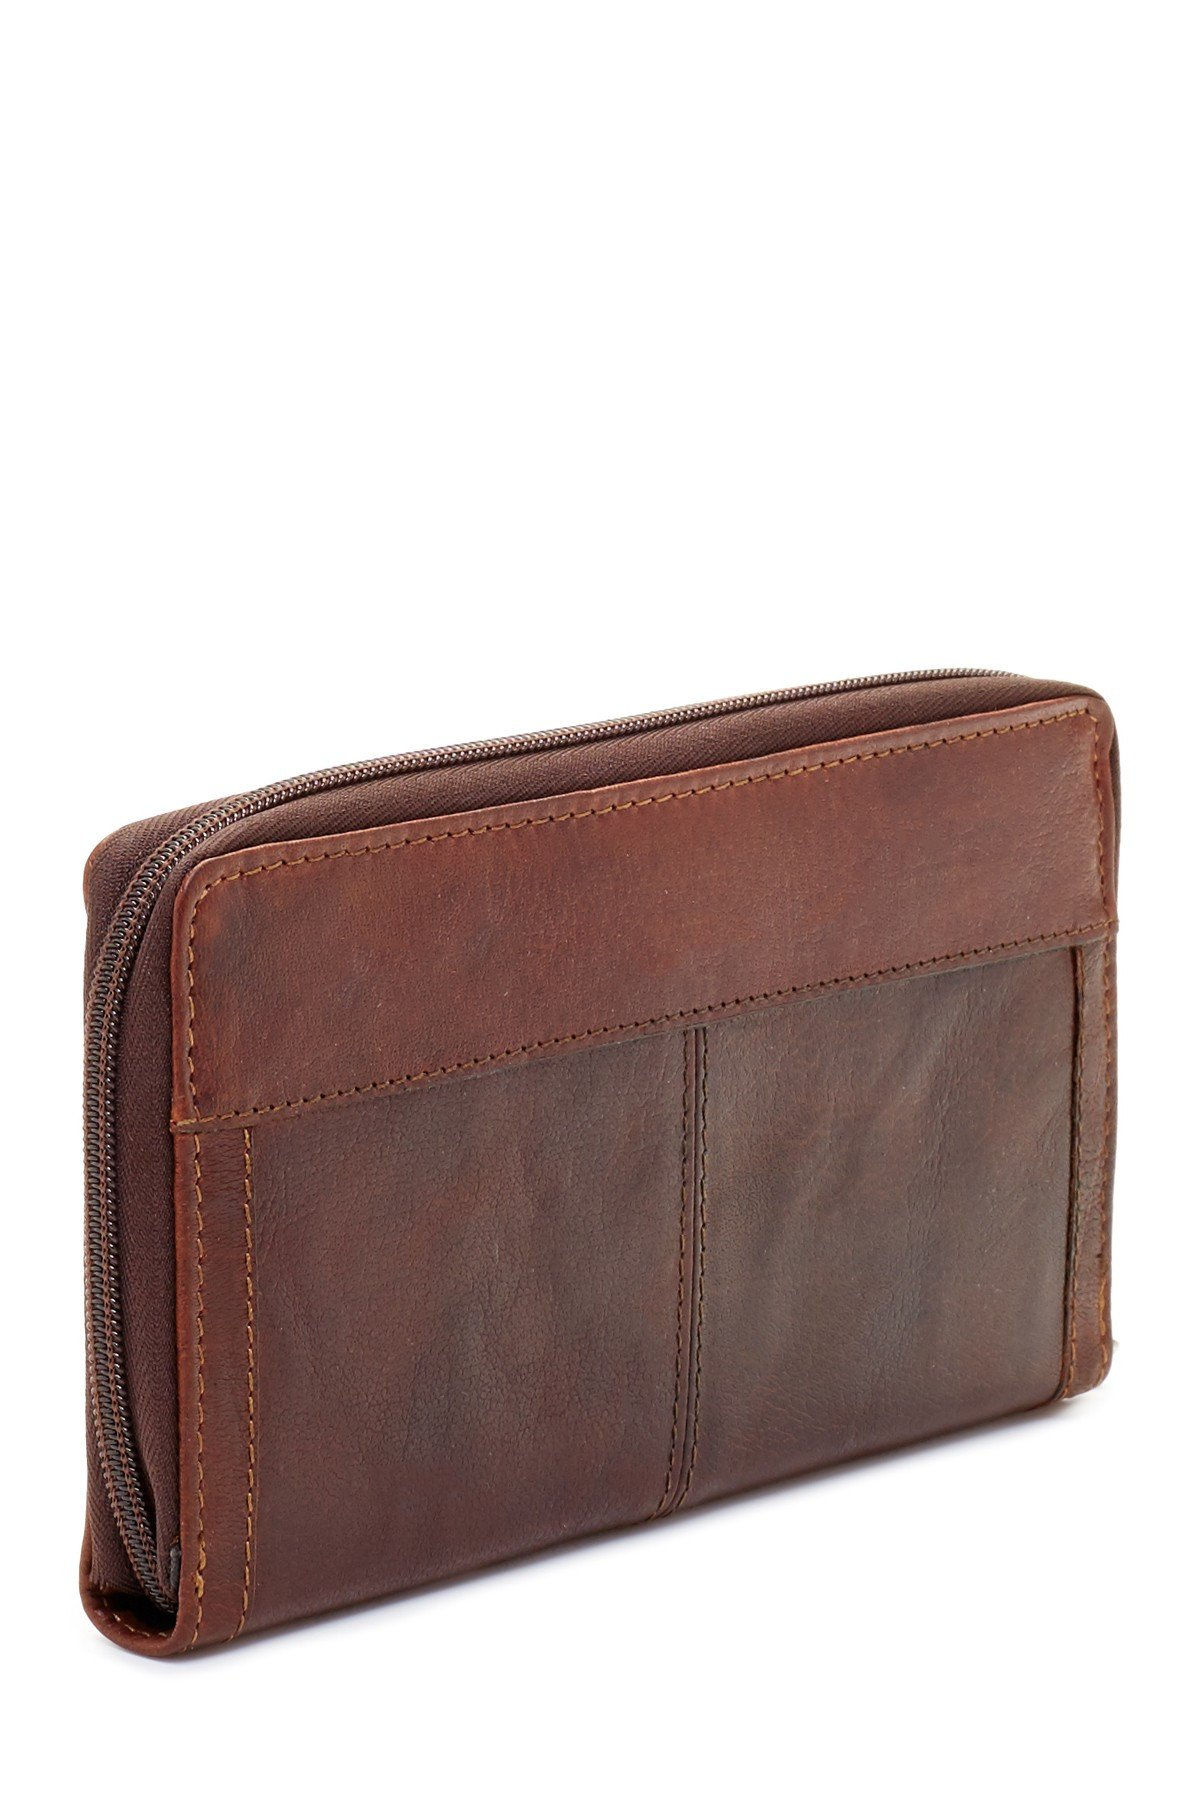 Jack Georges Voyager Large Zip-Around Leather Travel Wallet in Brown